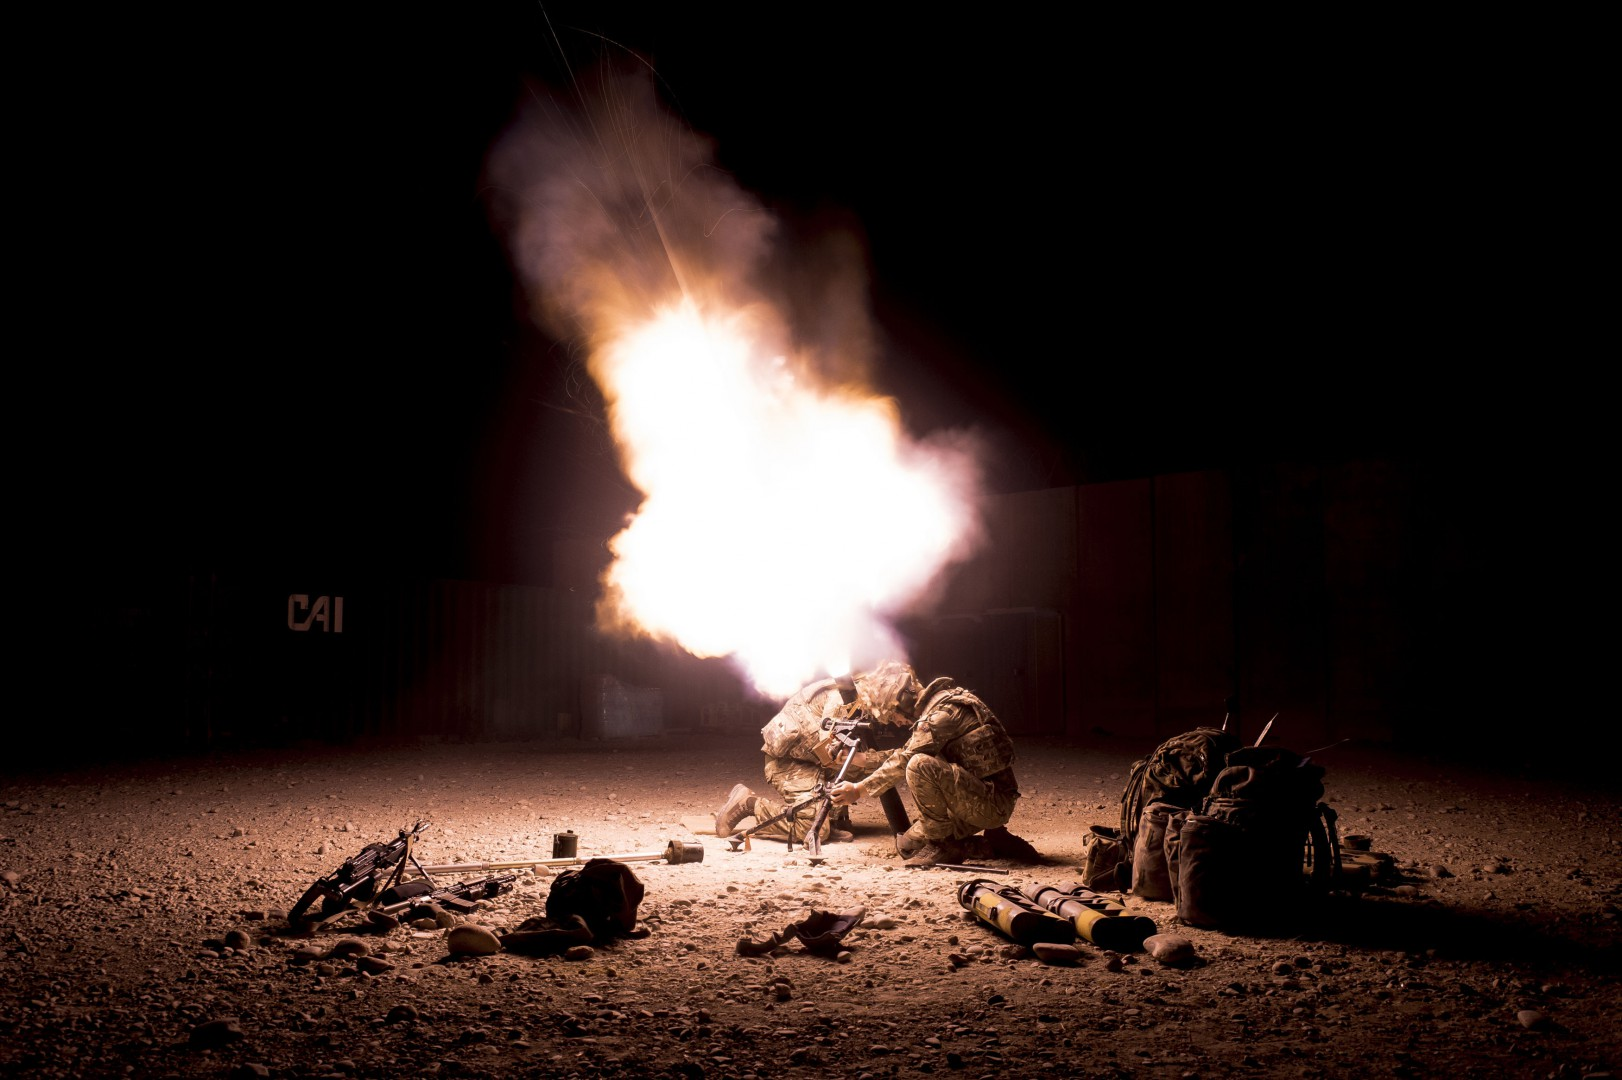 File photo dated 26/10/14 of mortars firing off over the perimeter of Camp Bastion, Helmand Province, Afghanistan, as the Ministry of Defence announced that women could be allowed to serve in British Army infantry and armoured units for the first time pending further research. PRESS ASSOCIATION Photo. Issue date: Friday December 19, 2014. A government-commissioned review which began earlier this year has recommended close combat roles are opened to women. See PA story DEFENCE Women. Photo credit should read: Ben Birchall/PA Wire